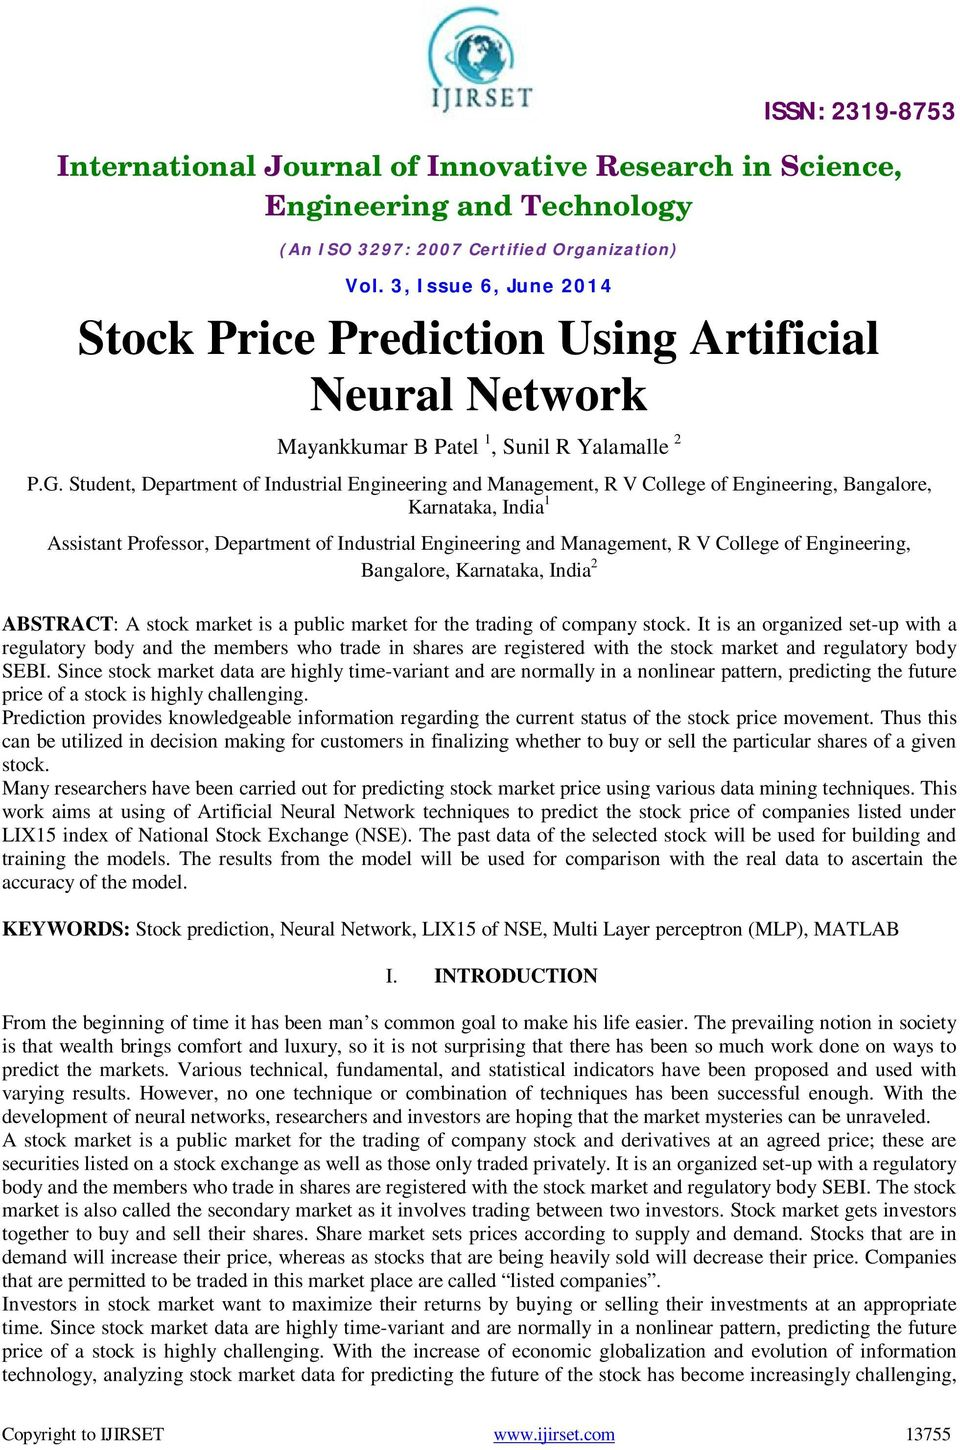 Stock Price Prediction Using Artificial Neural Network - PDF